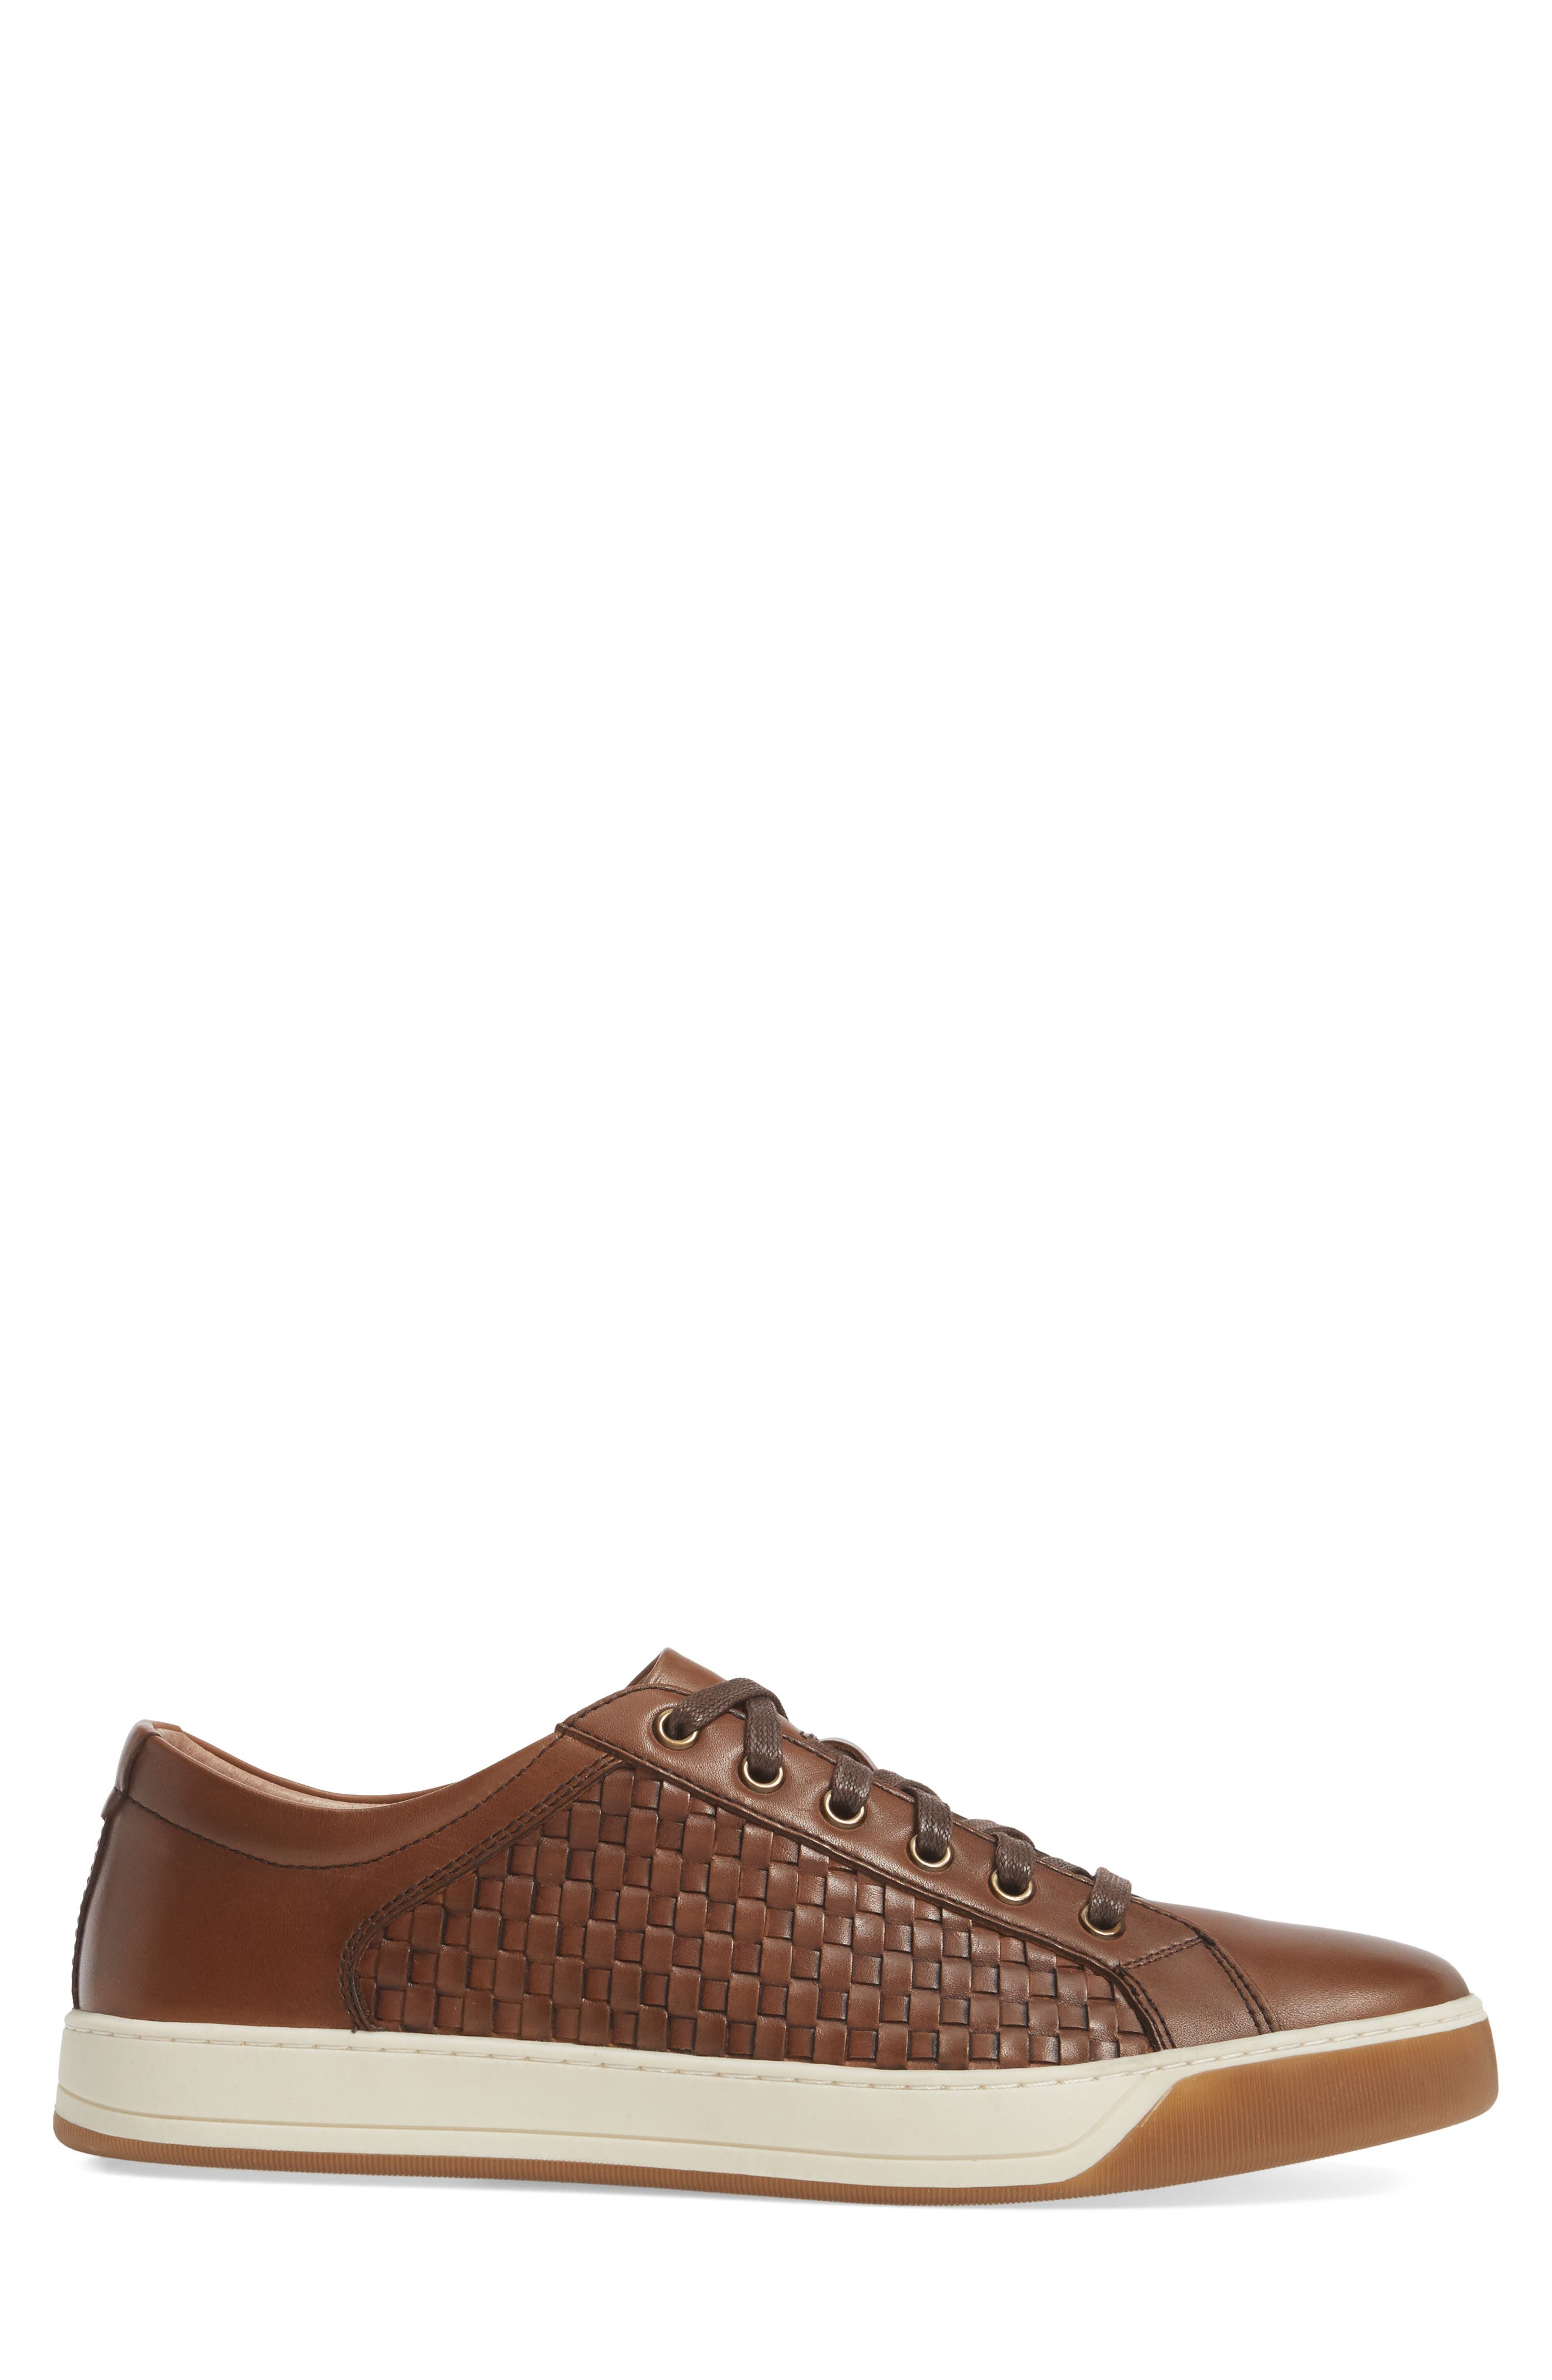 Allister Woven Low Top Sneaker,                             Alternate thumbnail 3, color,                             BROWN